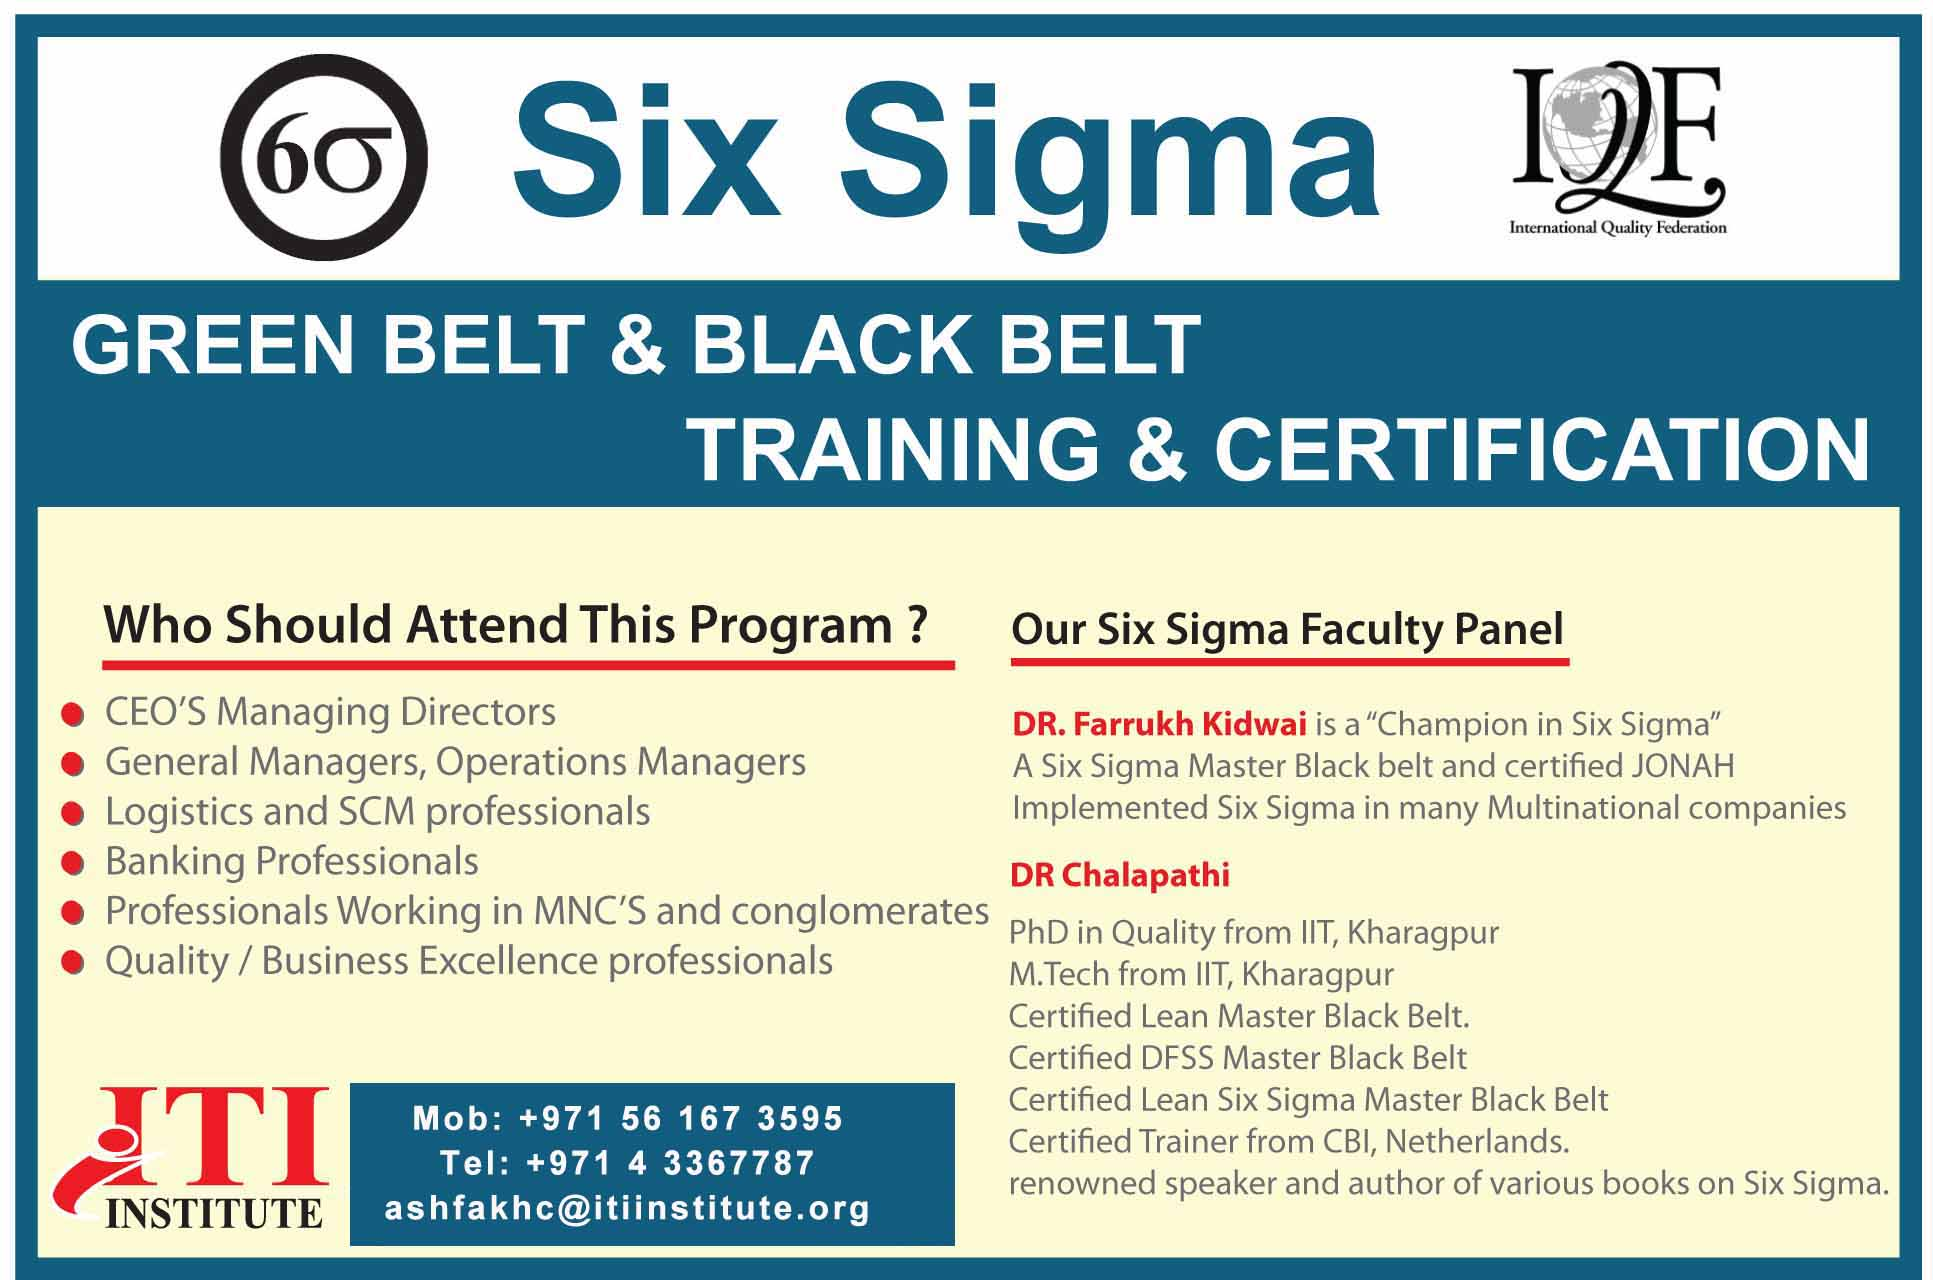 Six sigma green belt and black belt from iqf usa greensmedia six sigma green belt and black belt from iqf usa 1betcityfo Images